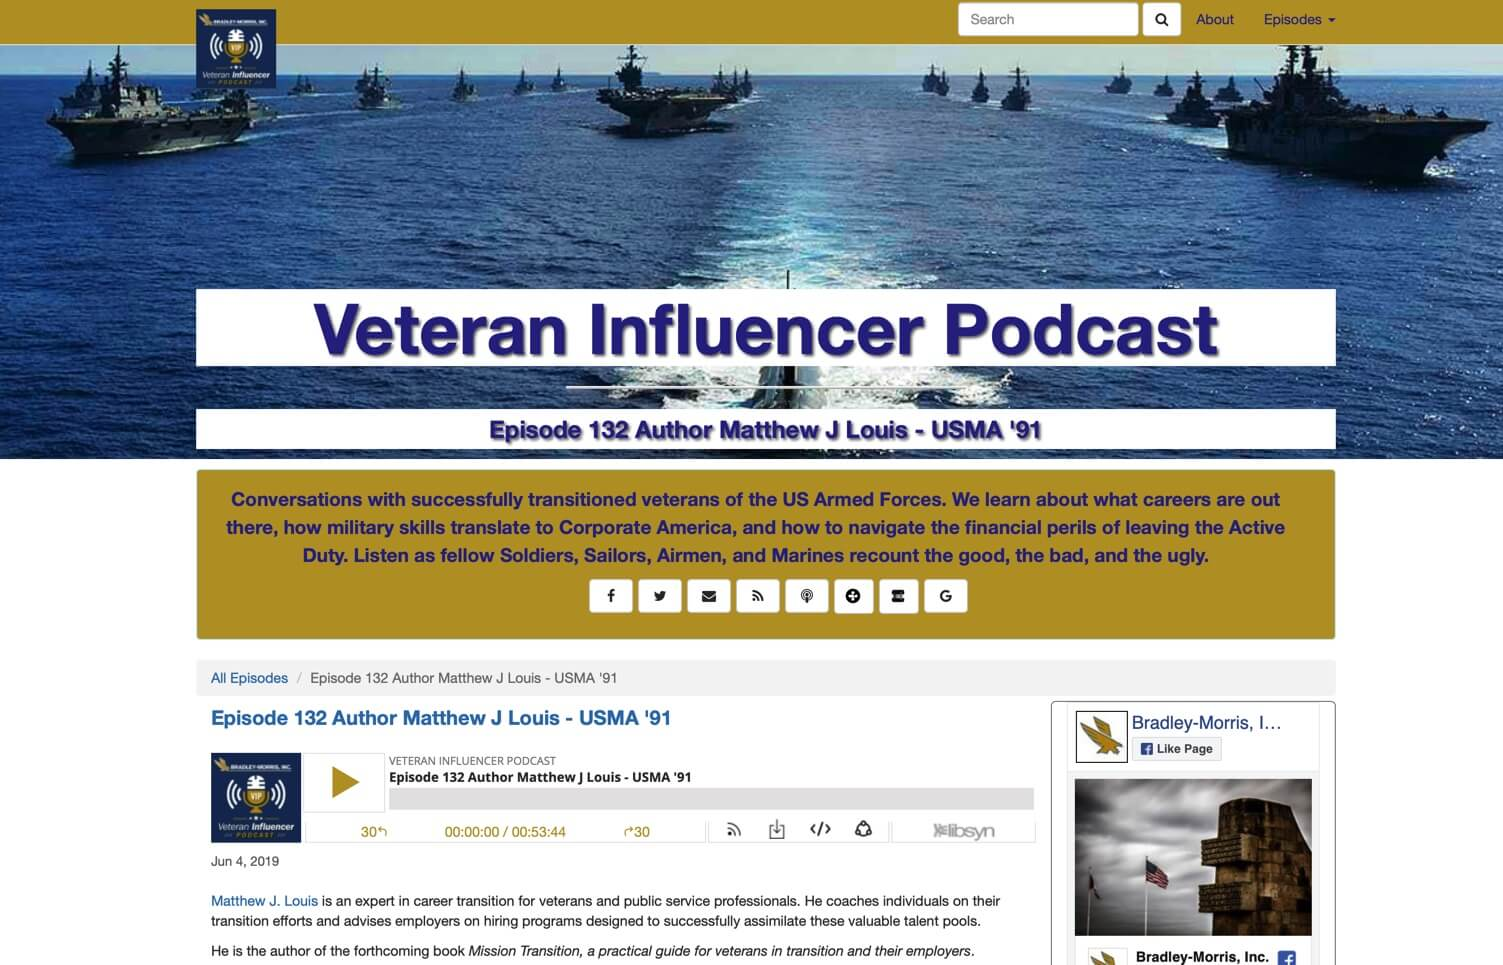 Welcome Veteran Influencer Listeners